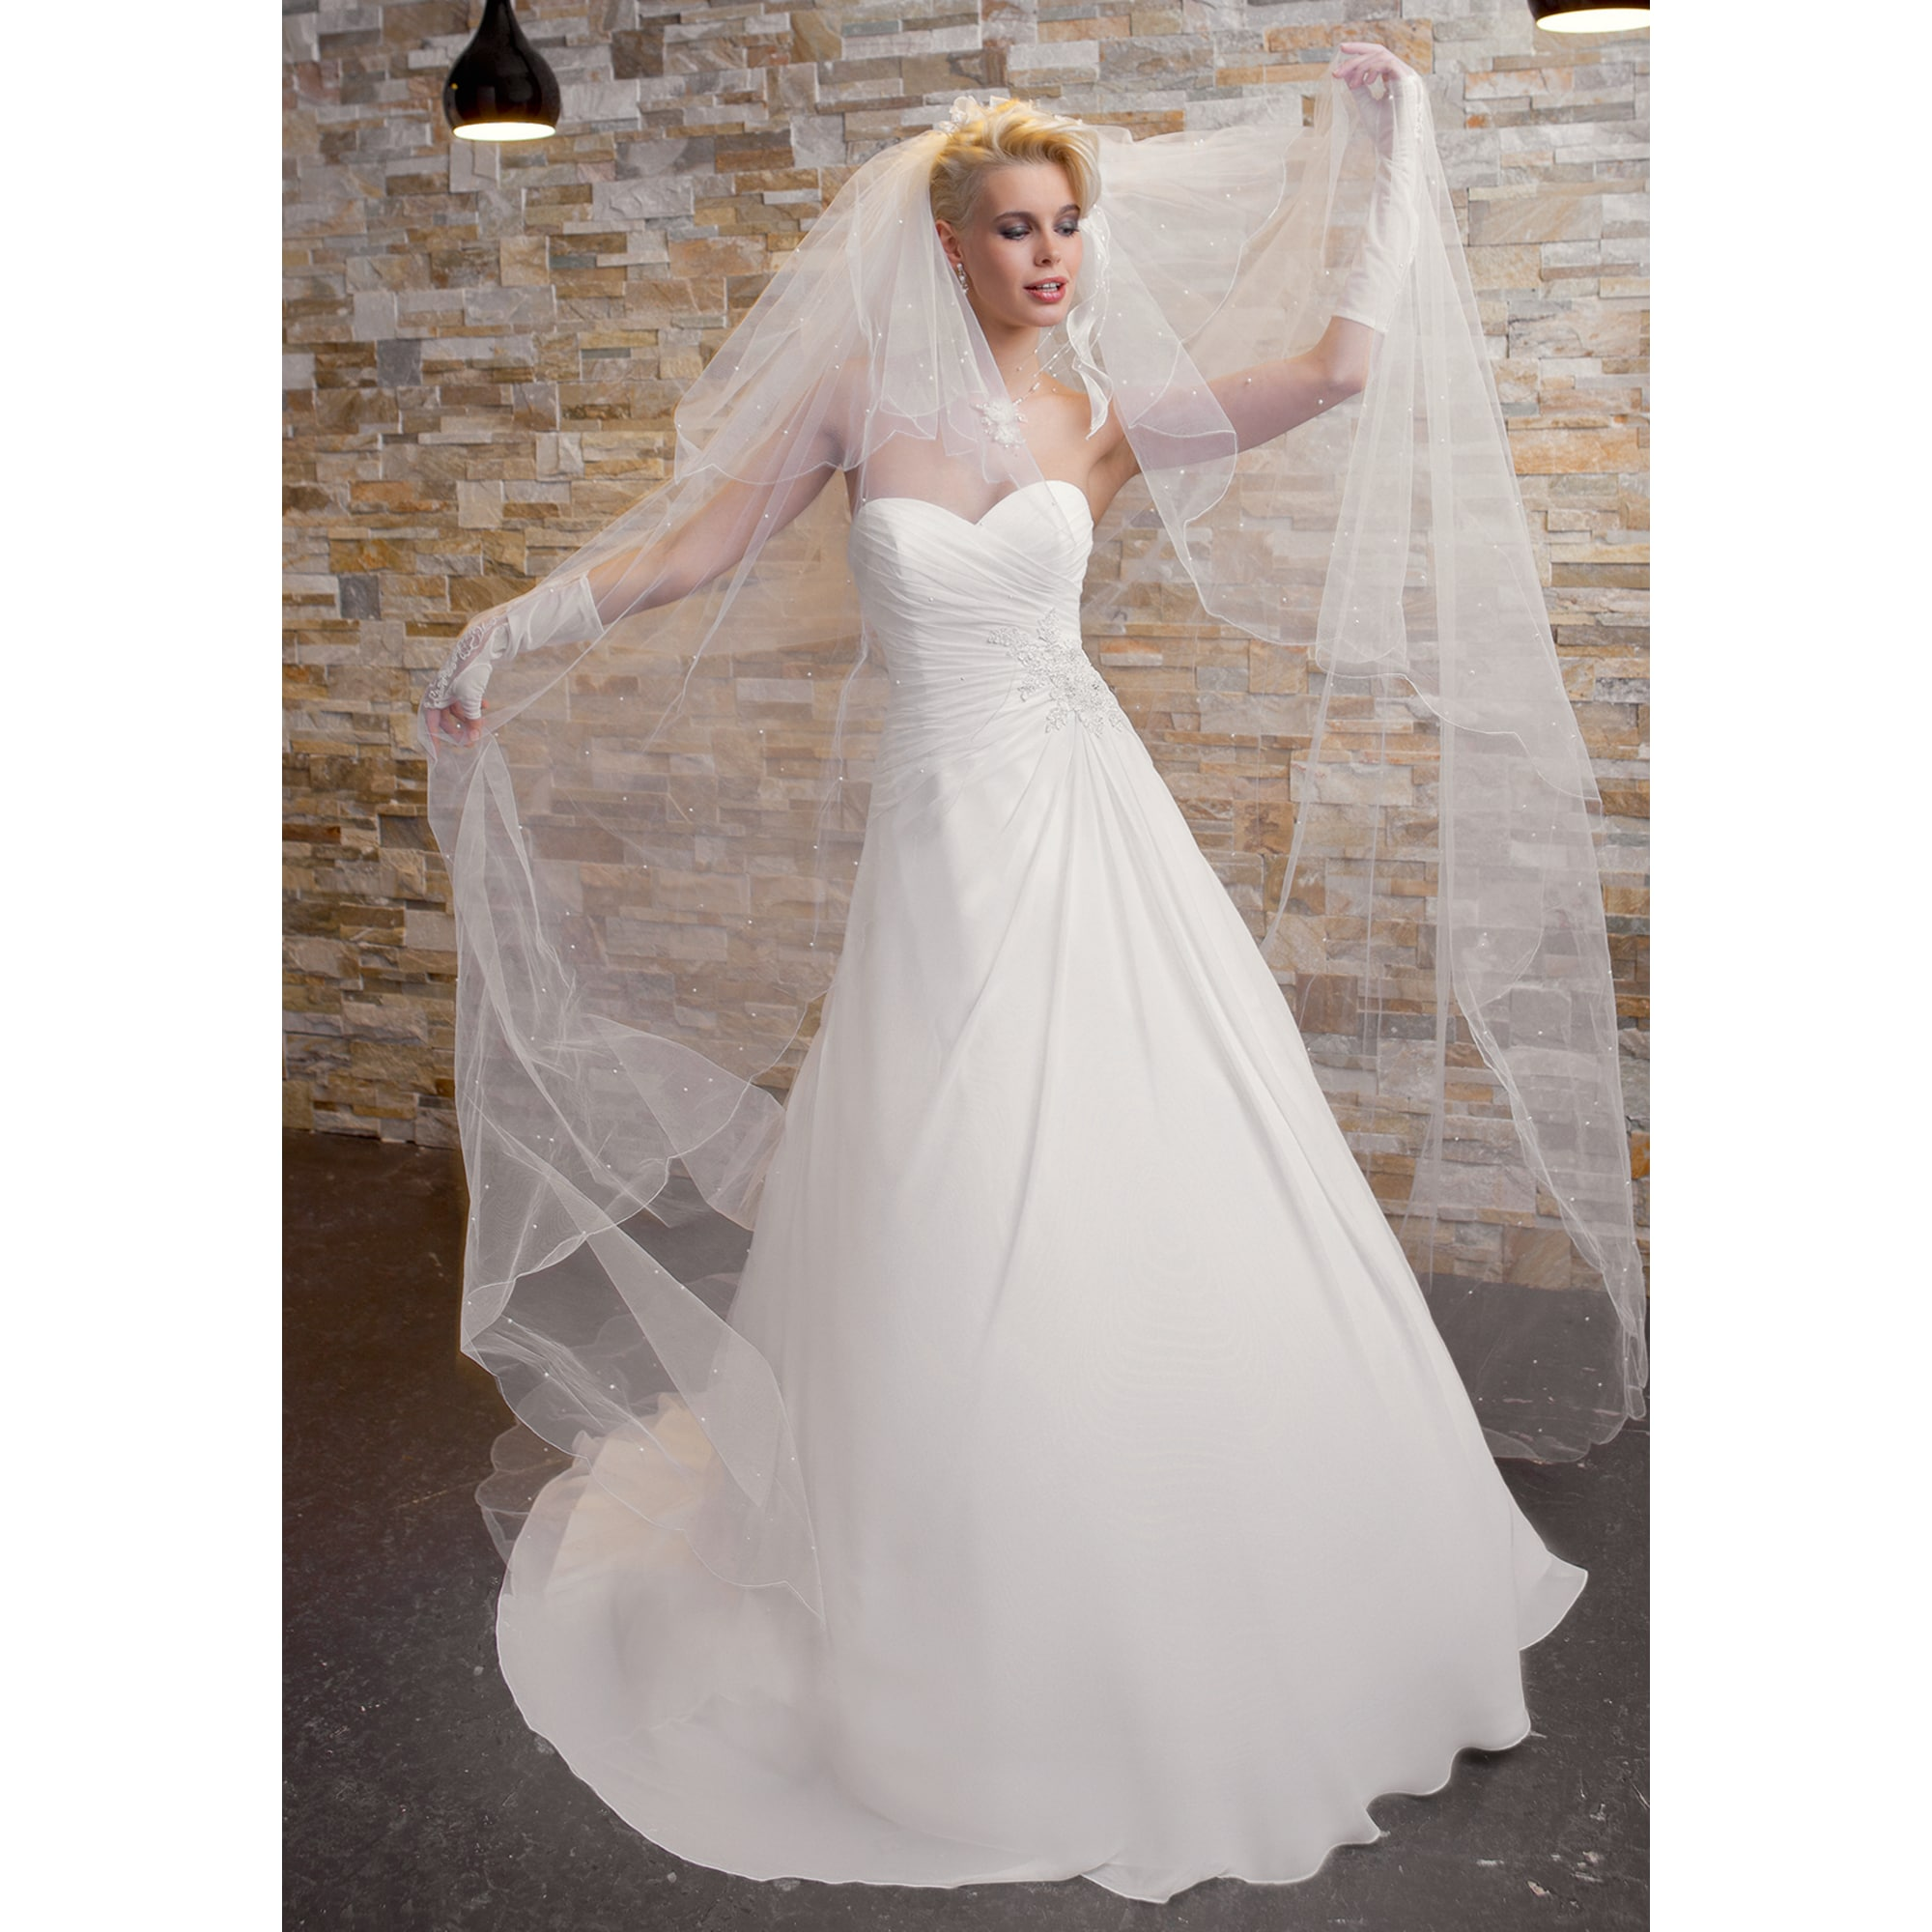 Bella Creation 42lxlT4Blanc Mariée De Robe 7968915 wnvmy8O0N